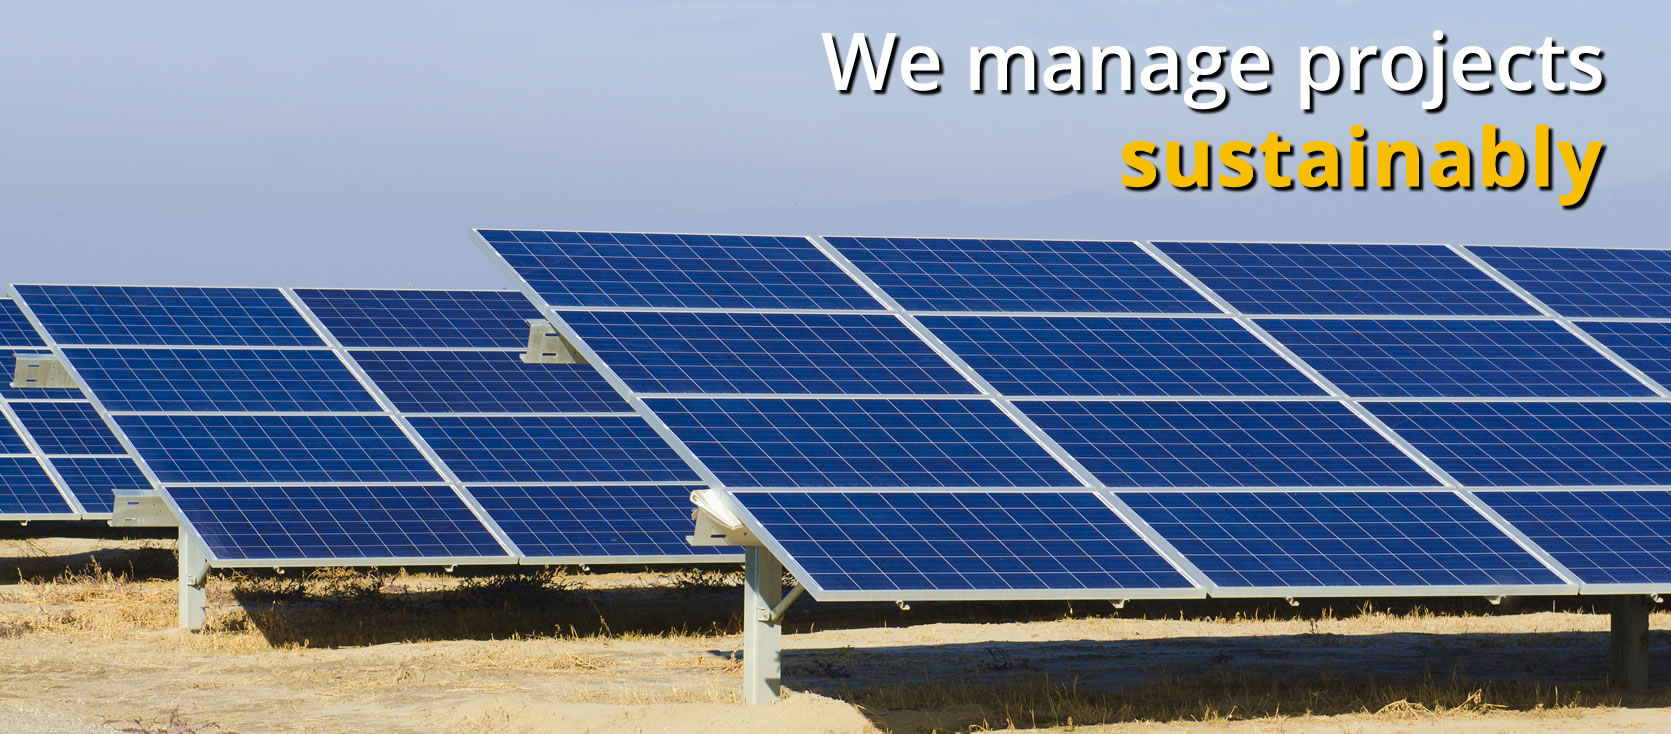 We manage projects <b>Sustainably</b>